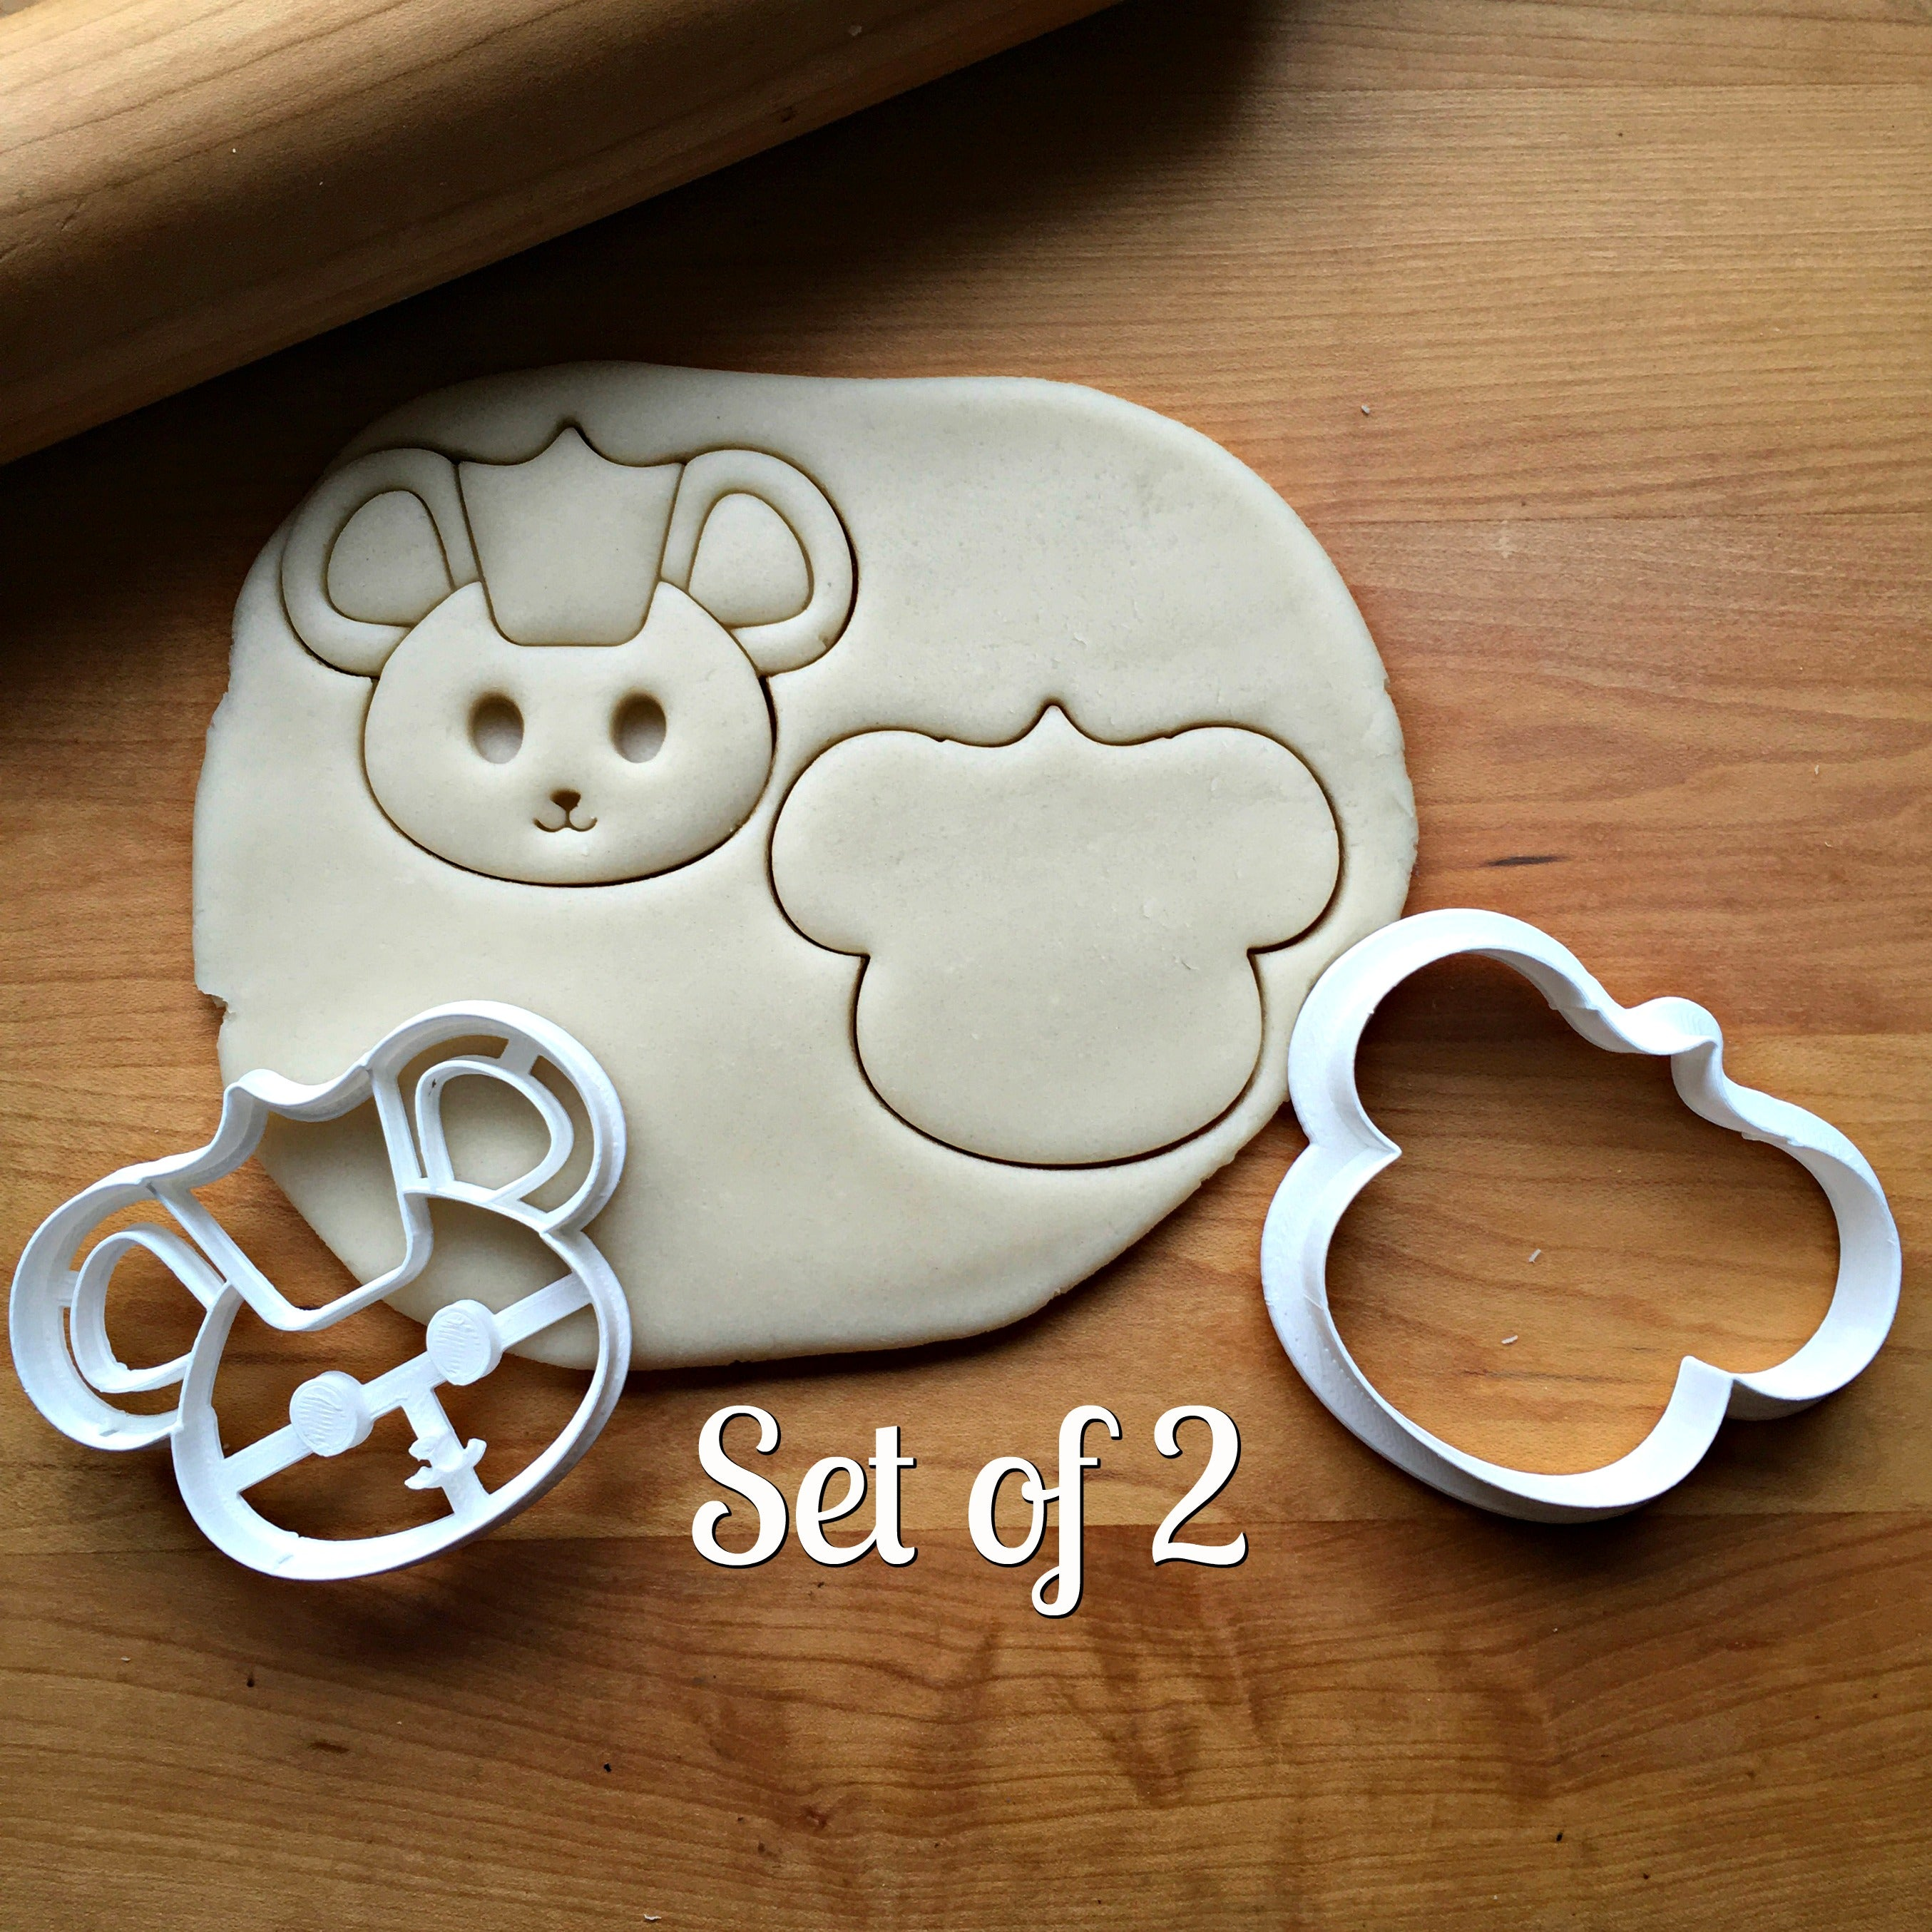 Set of 2 Cute Mouse King Cookie Cutters/Dishwasher Safe